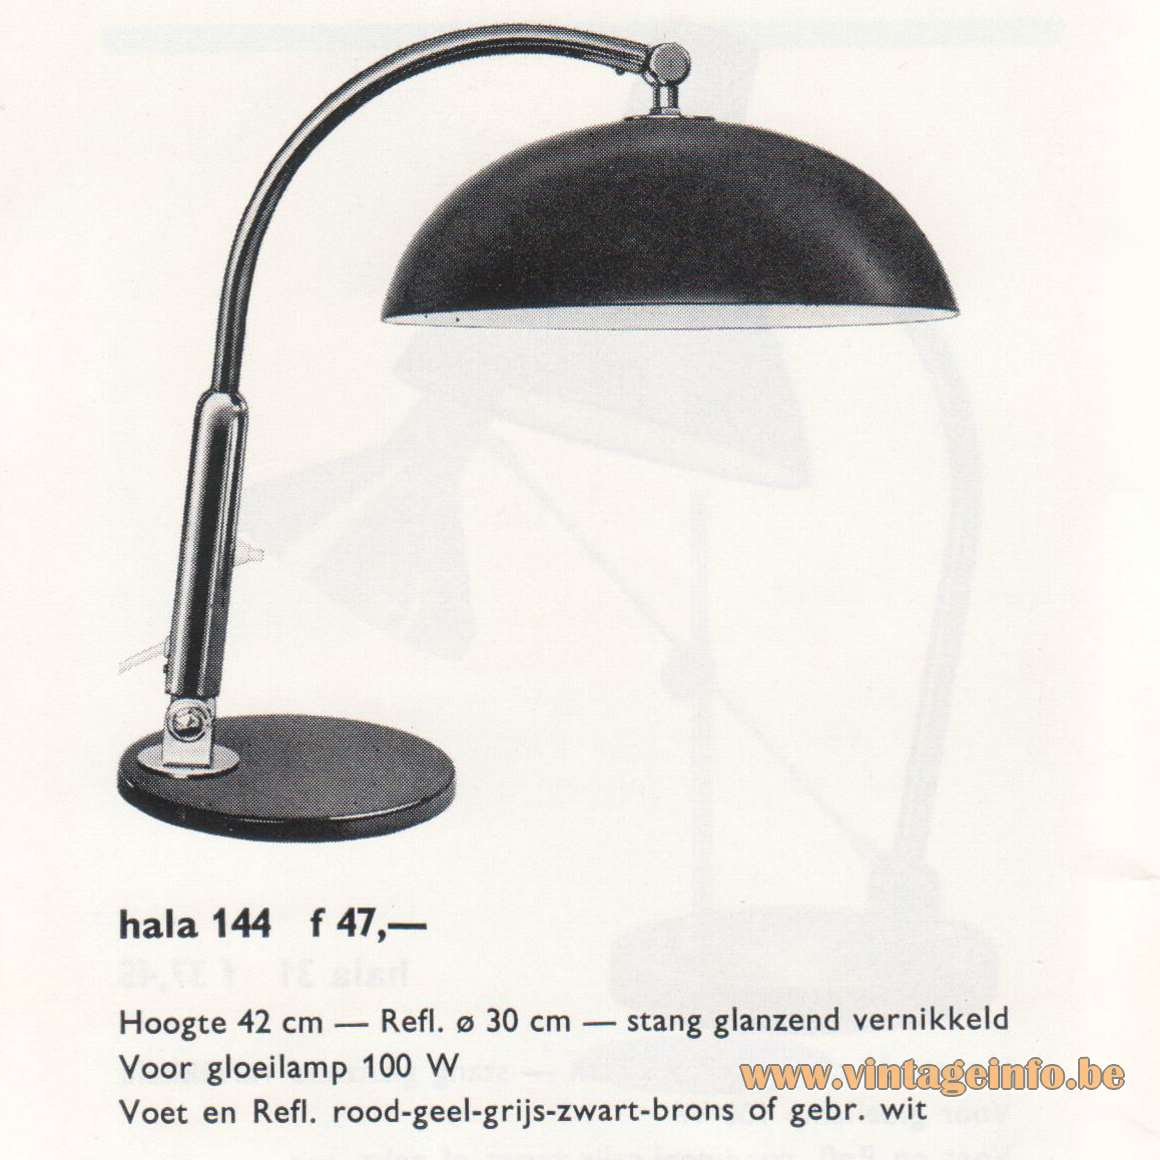 Hala 144 Desk Lamp - Catalogue 1967